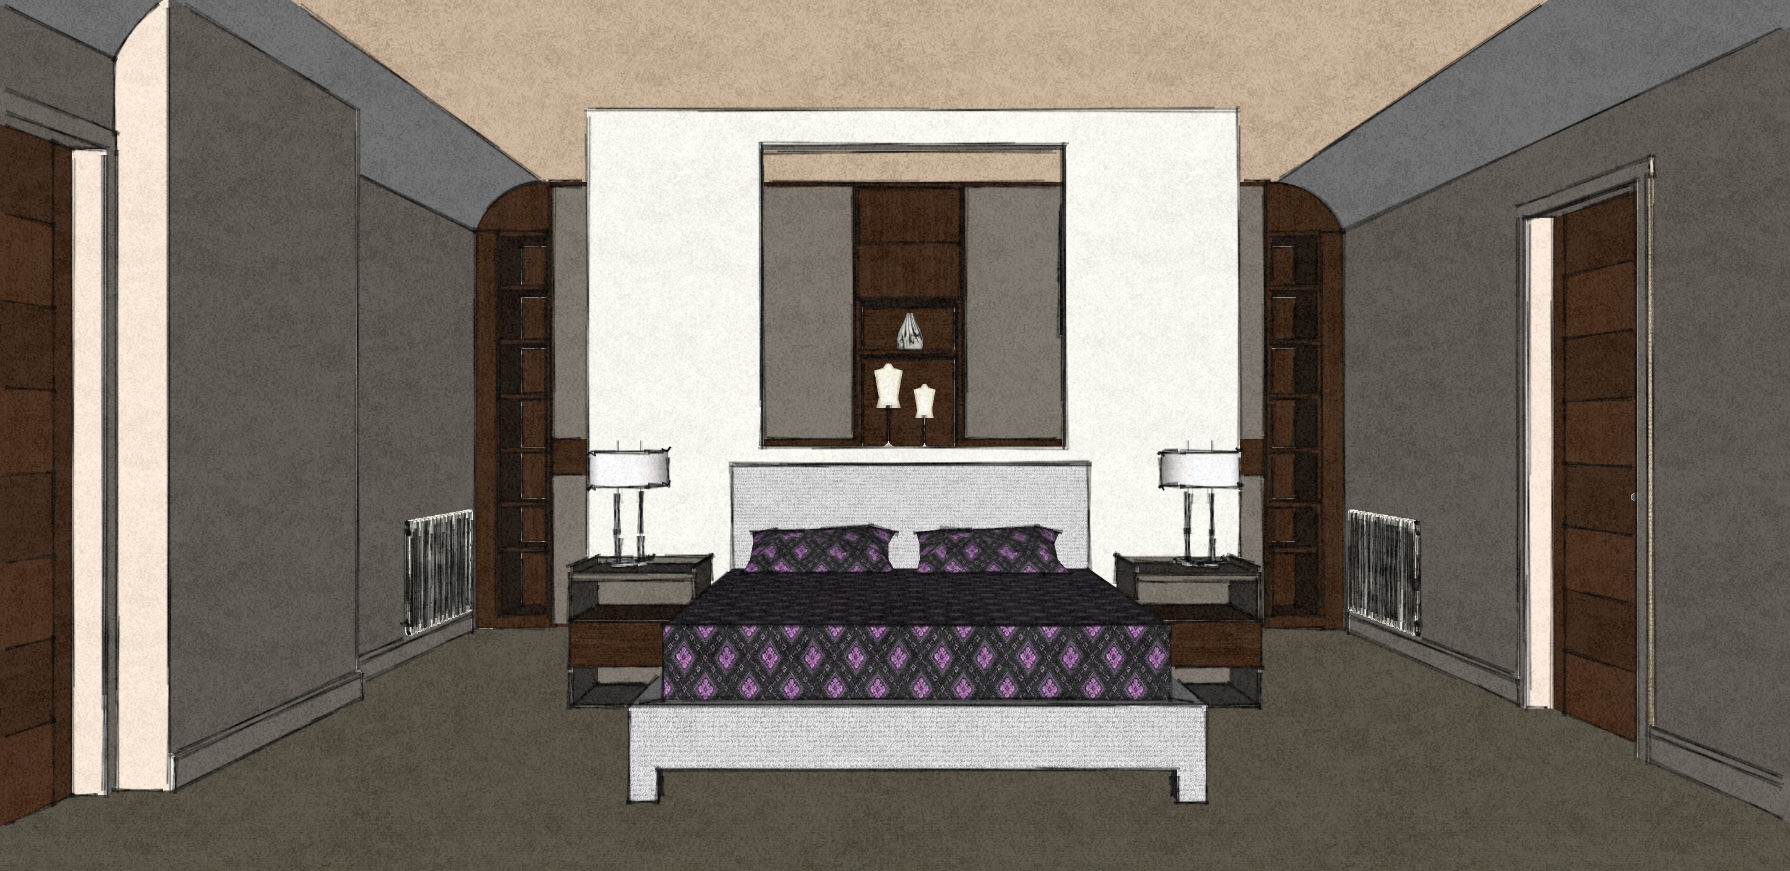 Sarah and Ed initial bedroom design a elevation a.jpg